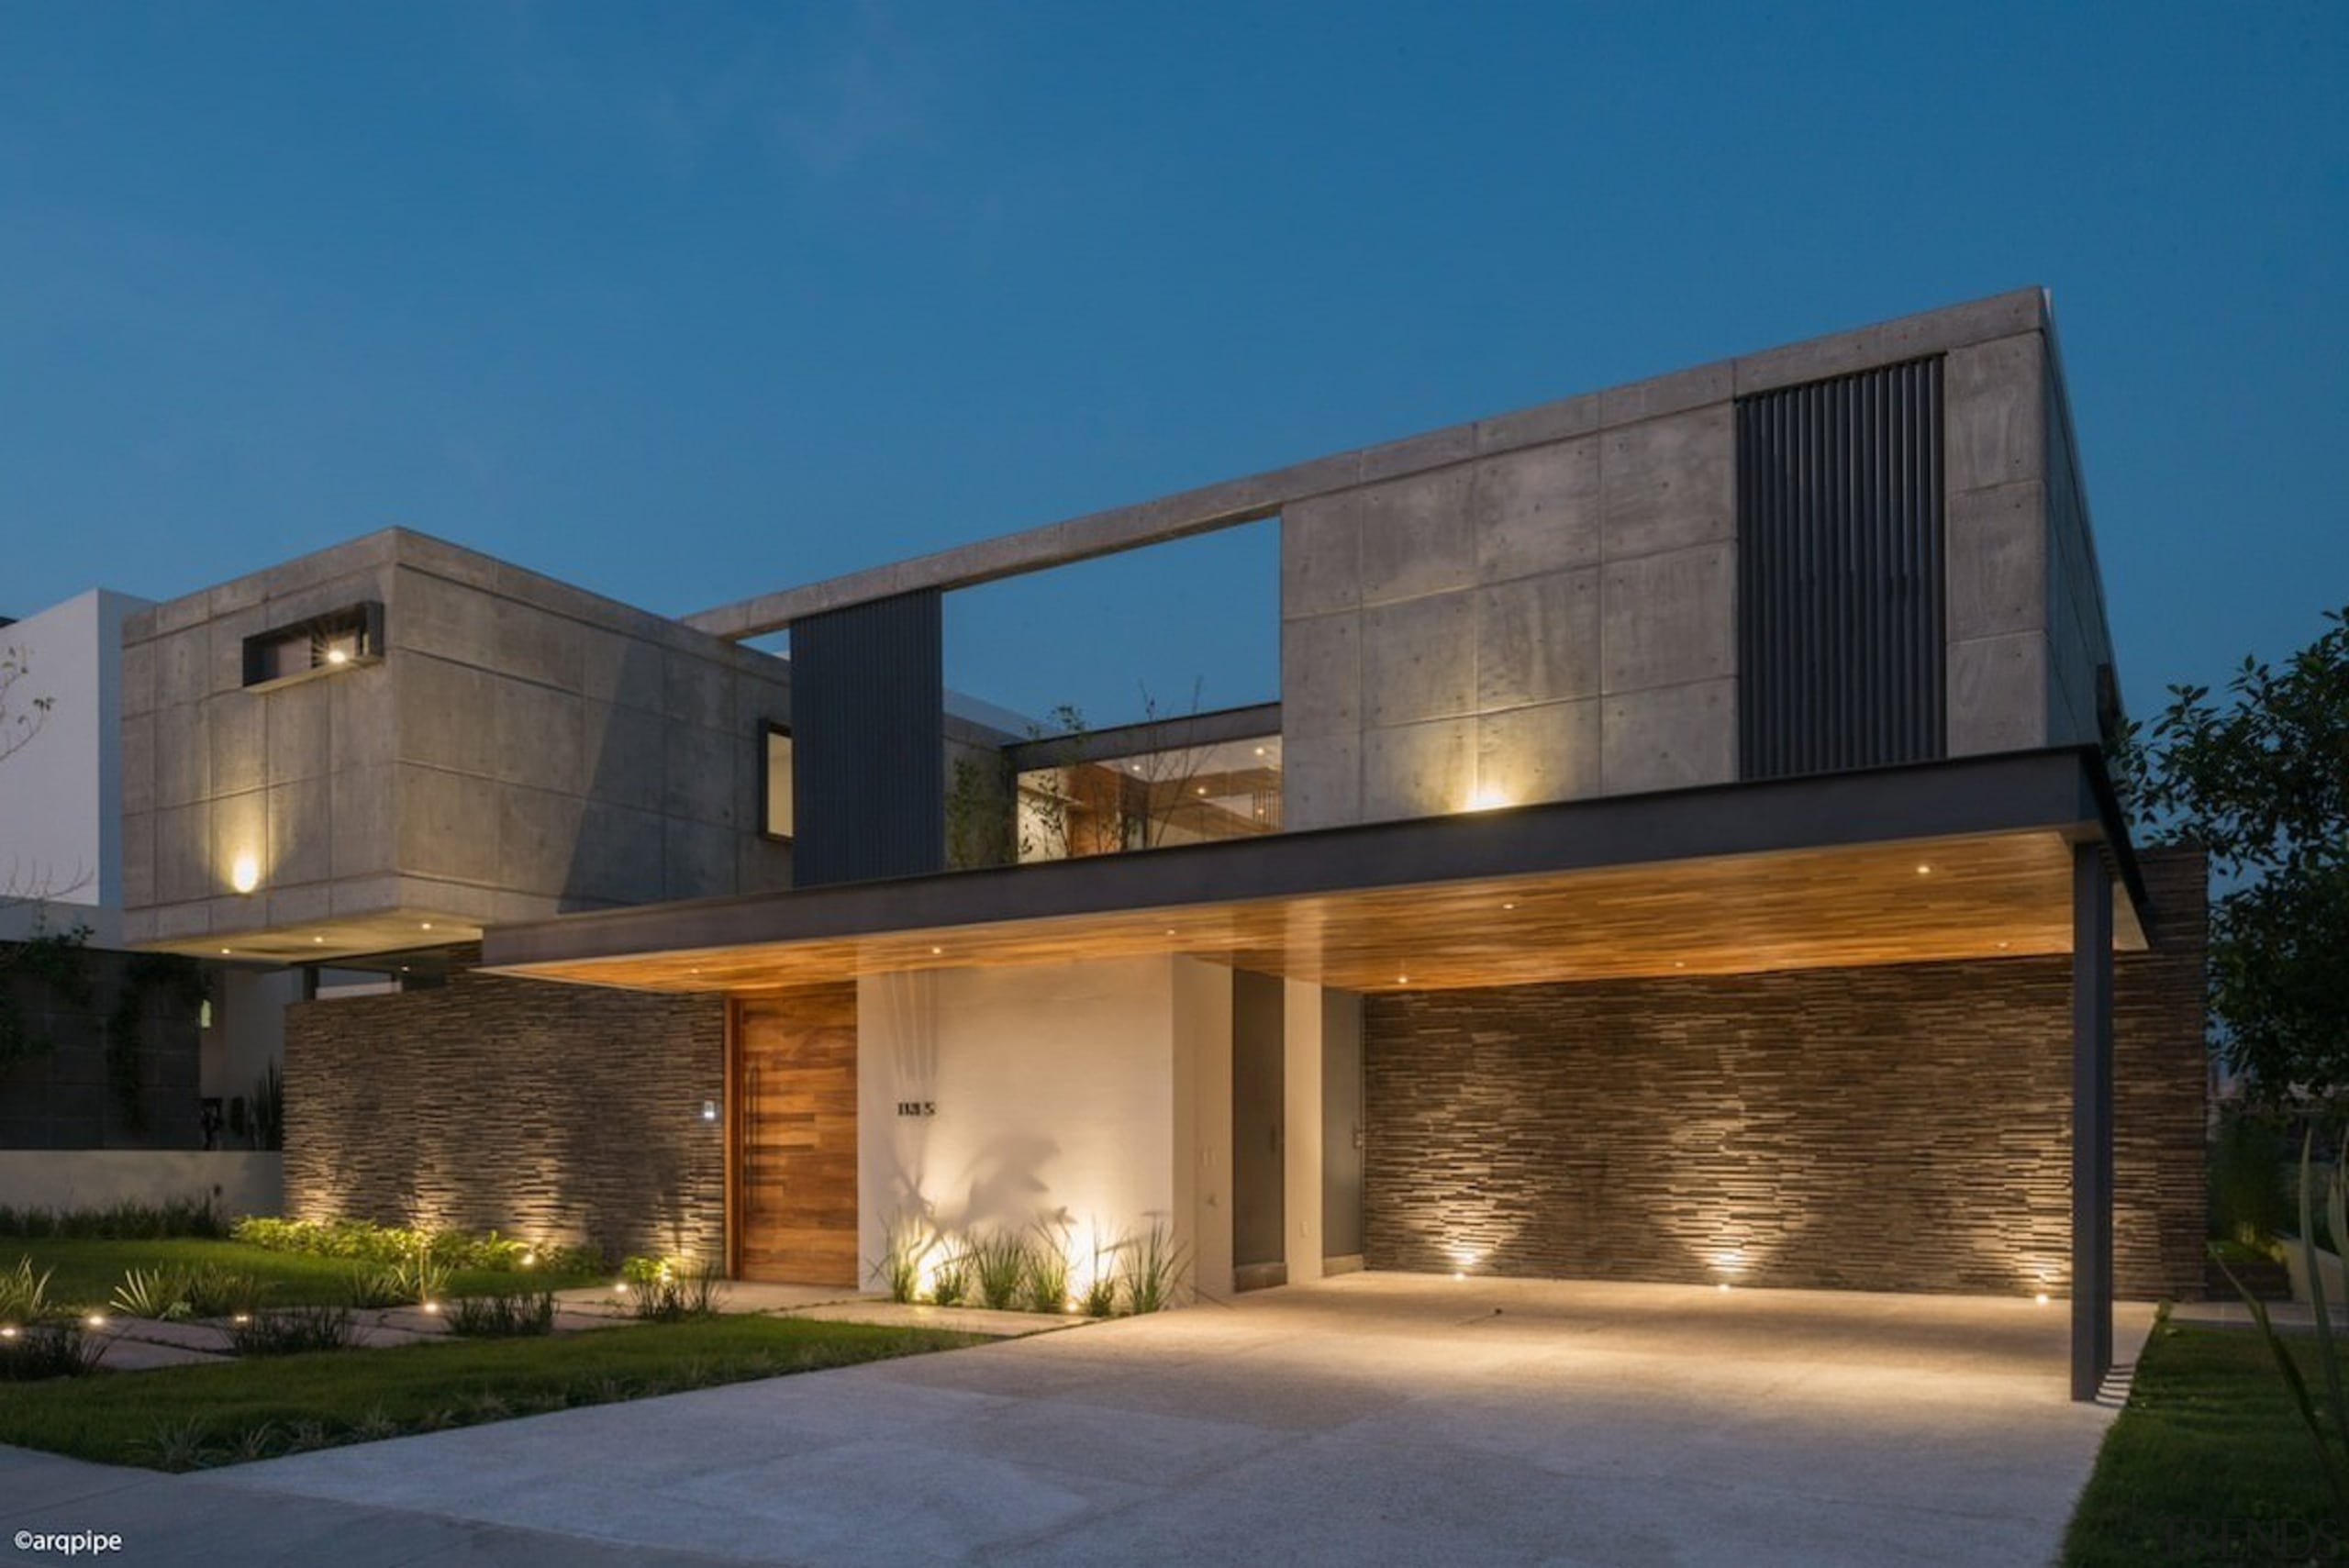 Colima home/Di Frenna Arquitectos - Colima home/Di Frenna architecture, building, elevation, estate, facade, home, house, property, real estate, residential area, window, teal